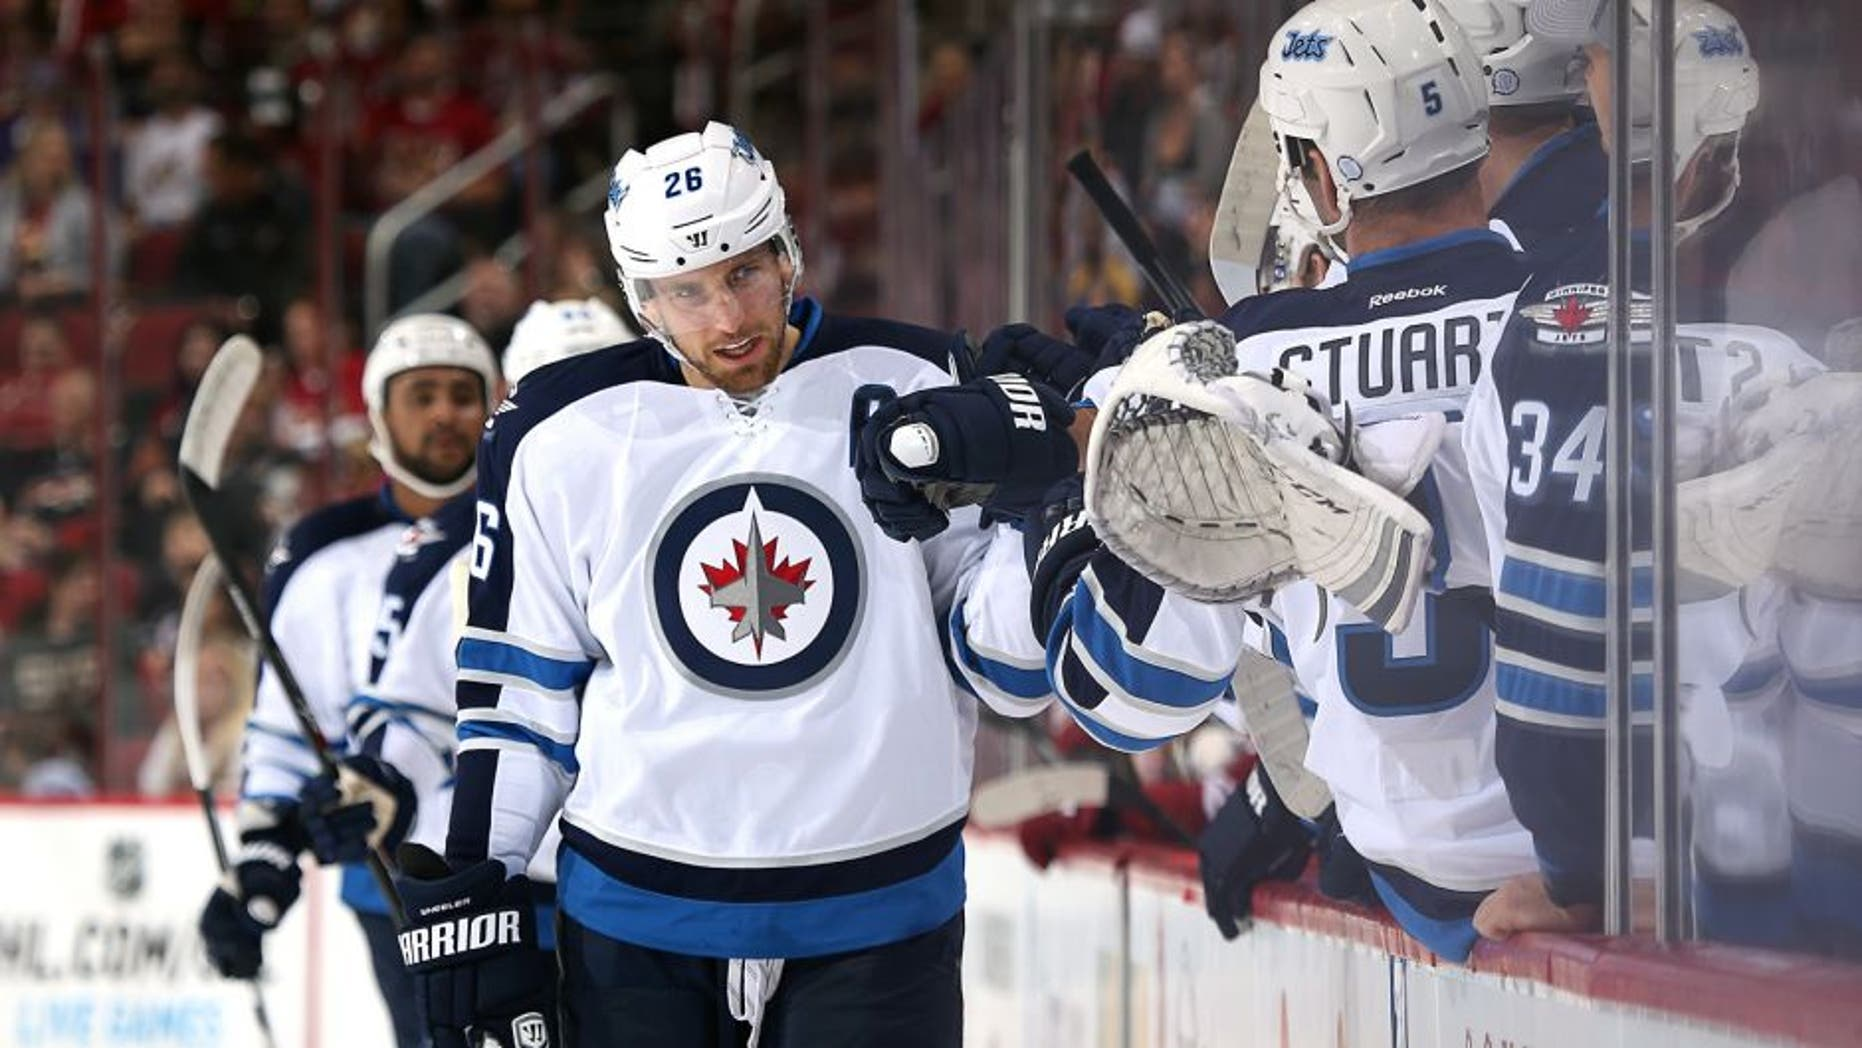 GLENDALE, AZ - OCTOBER 09: Blake Wheeler #26 of the Winnipeg Jets celebrates with teammates on the bench after scoring a first period goal against the Arizona Coyotes during the NHL game at Gila River Arena on October 9, 2014 in Glendale, Arizona. (Photo by Christian Petersen/Getty Images)